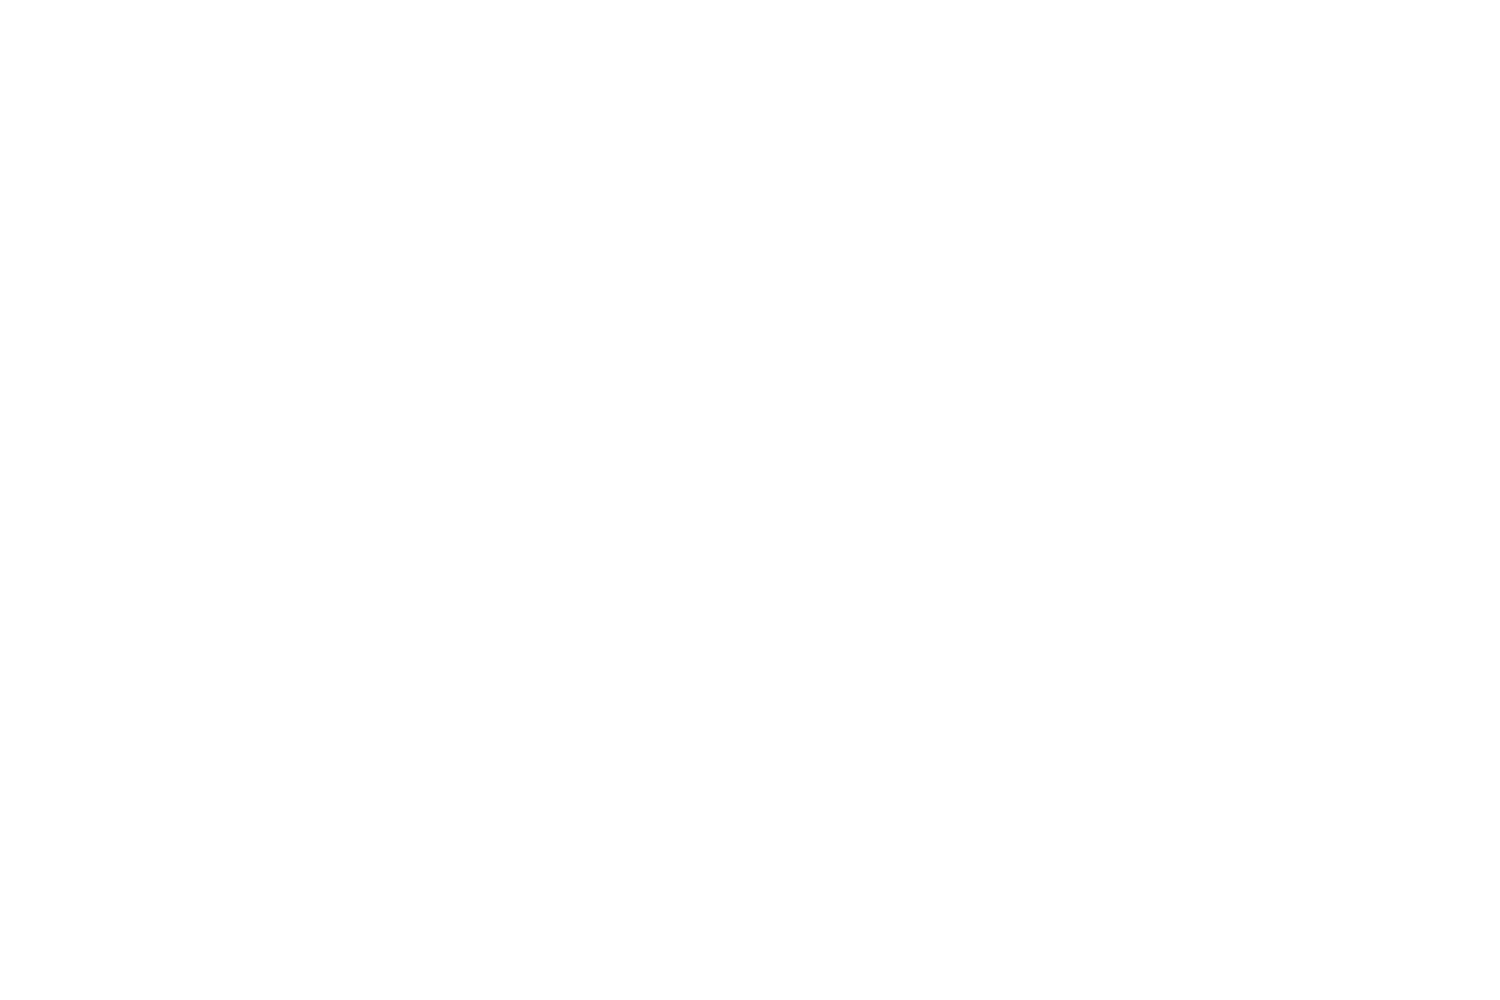 Pamela Dunlap Photography